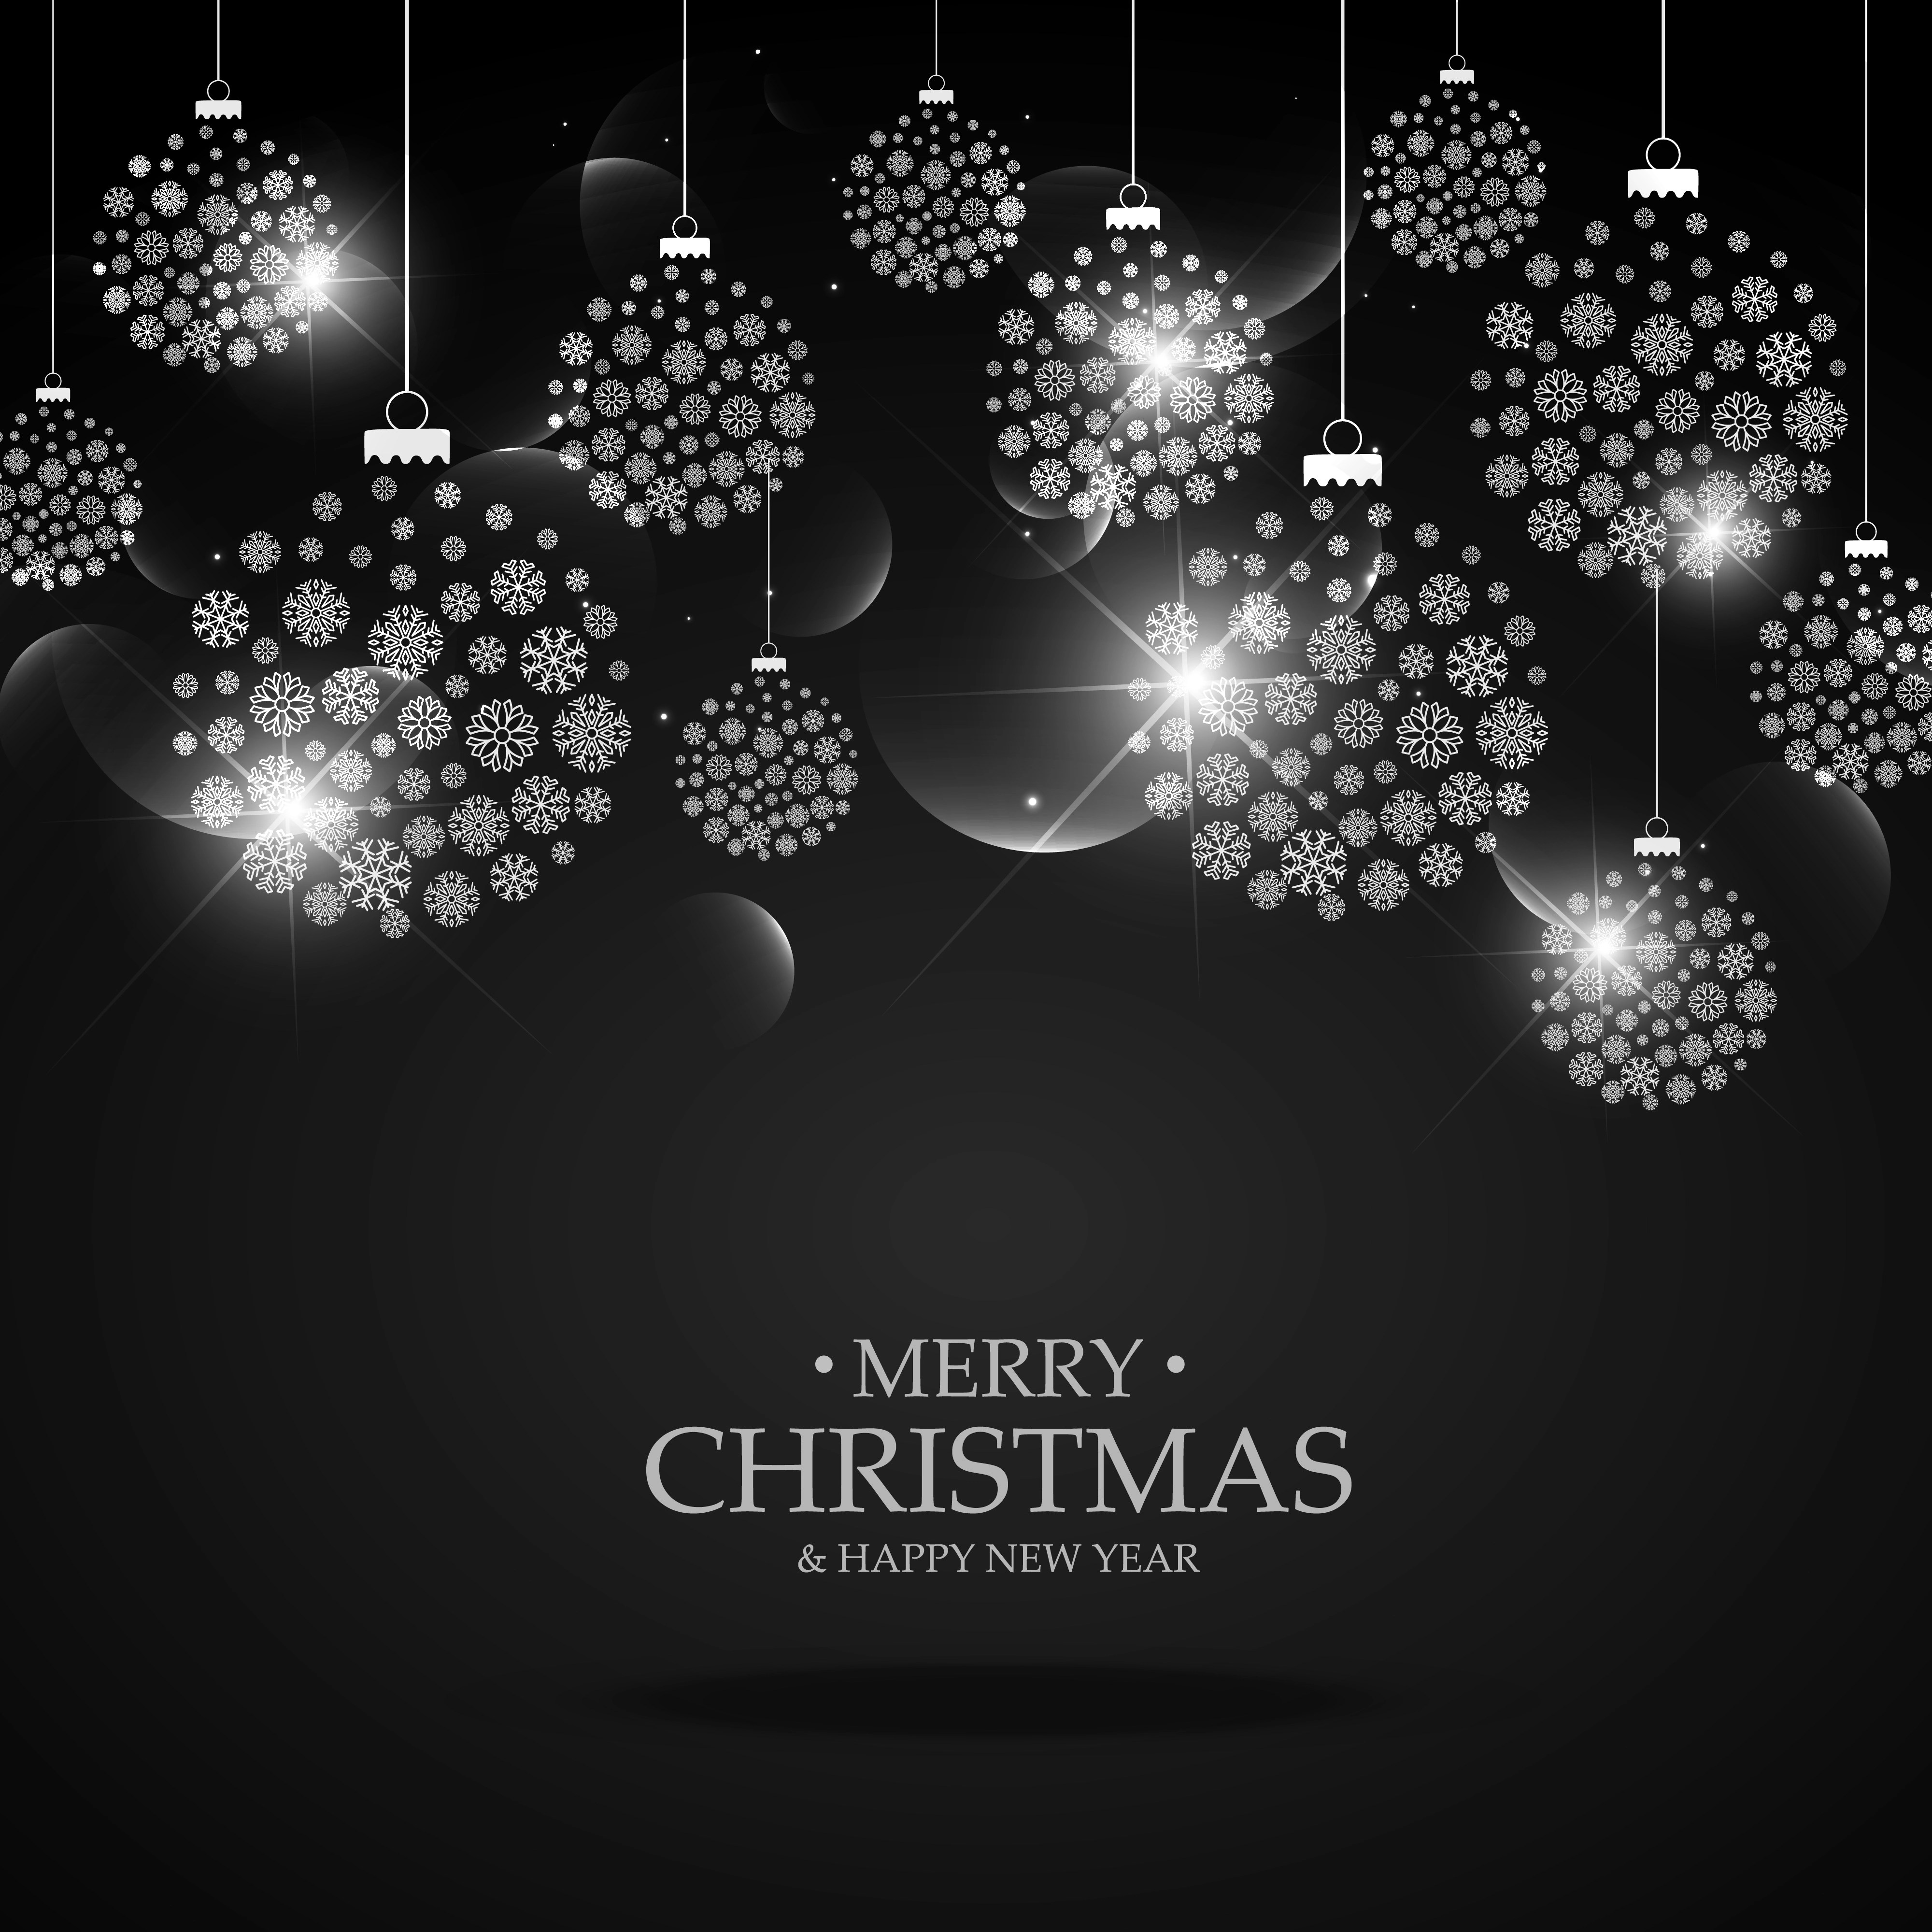 Black Background With Hanging Christmas Festival Balls